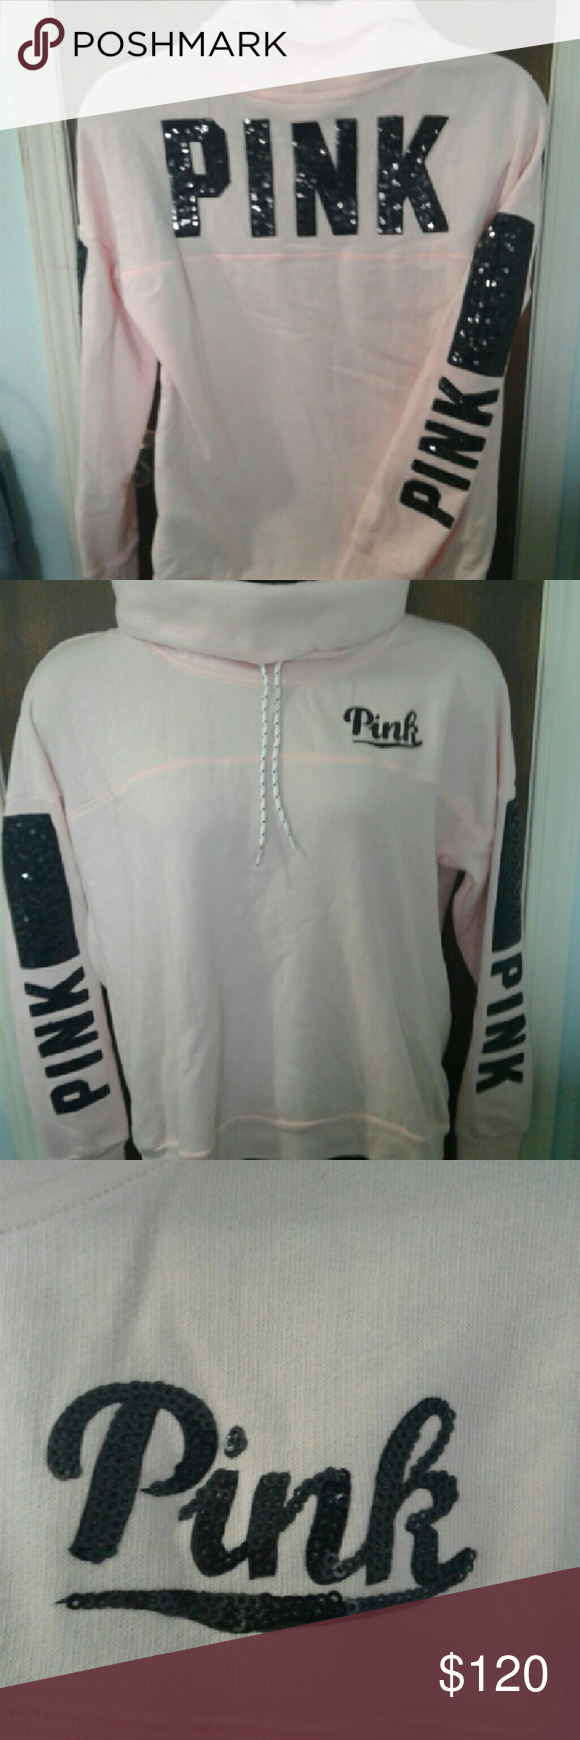 Victoria Secret Pink bling cowl neck pullover Brand new Victoria's Secret pink bling cowl neck pullover PINK  Tops Tunics